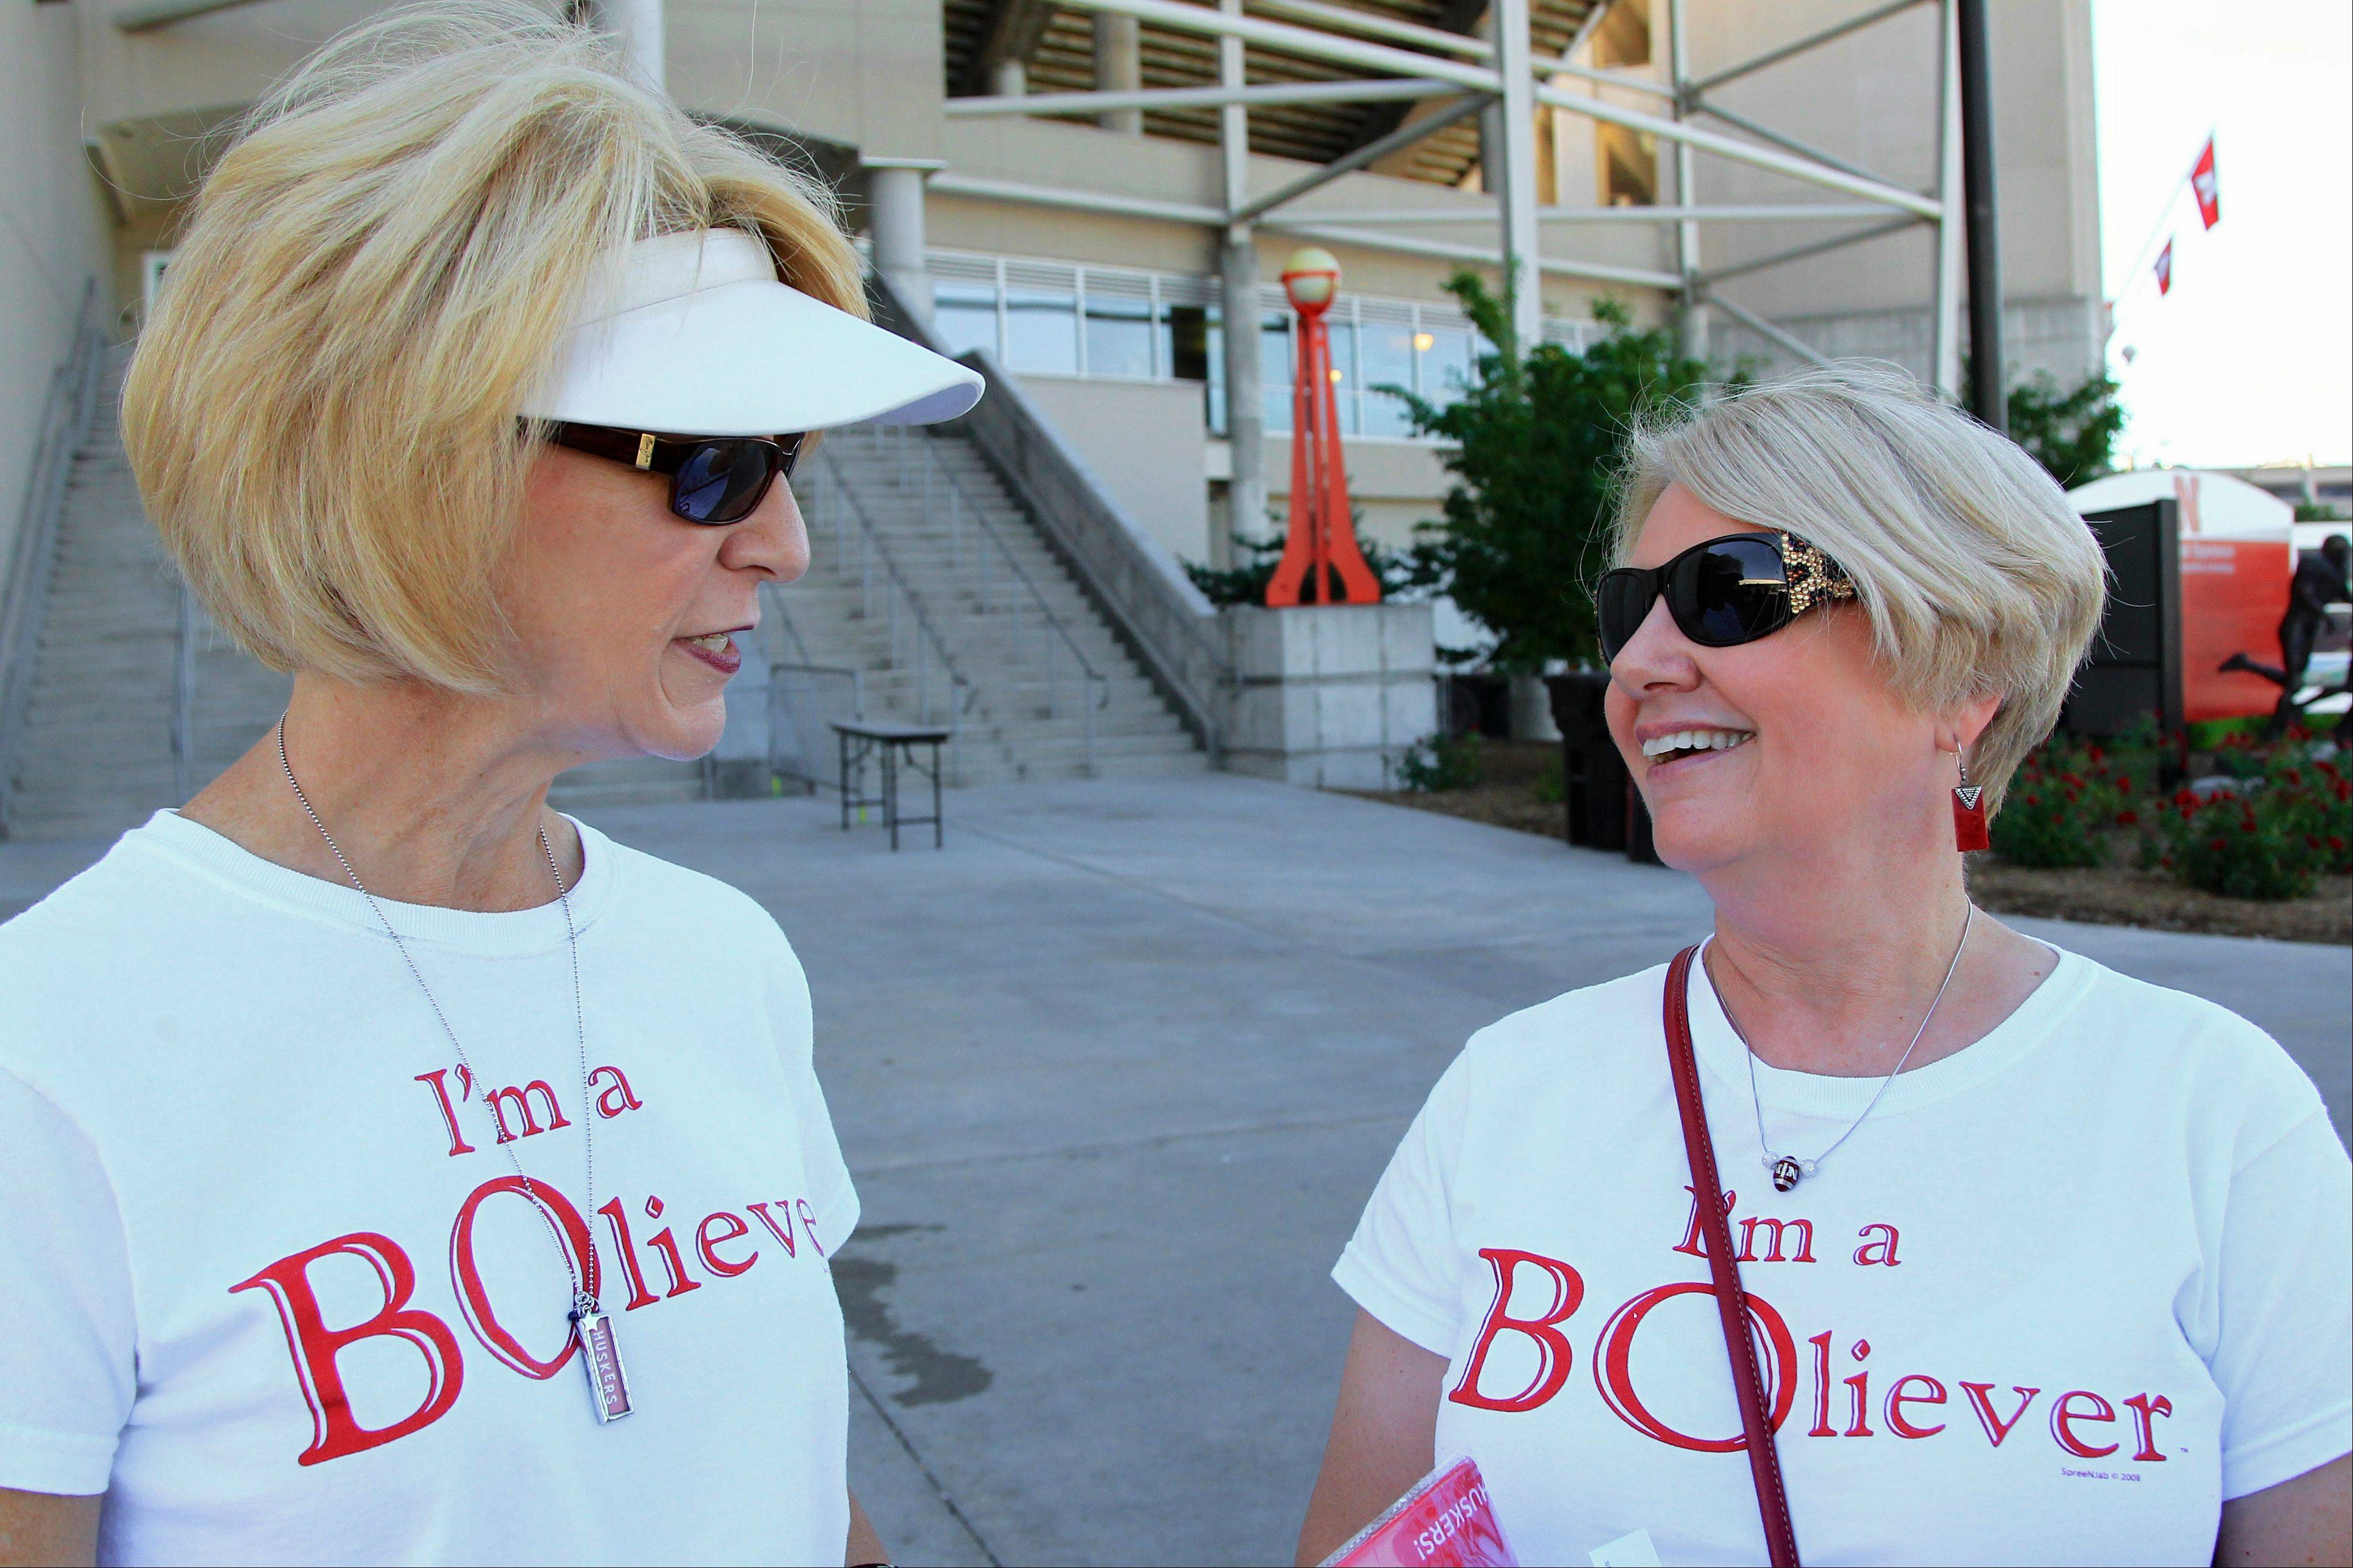 Karen Shelton, left, and her sister Sue Schrader, both of Lincoln, Neb., wear shirts in support of Nebraska head coach Bo Pelini on Saturday outside of Memorial Stadium before game between South Dakota State and Nebraska.